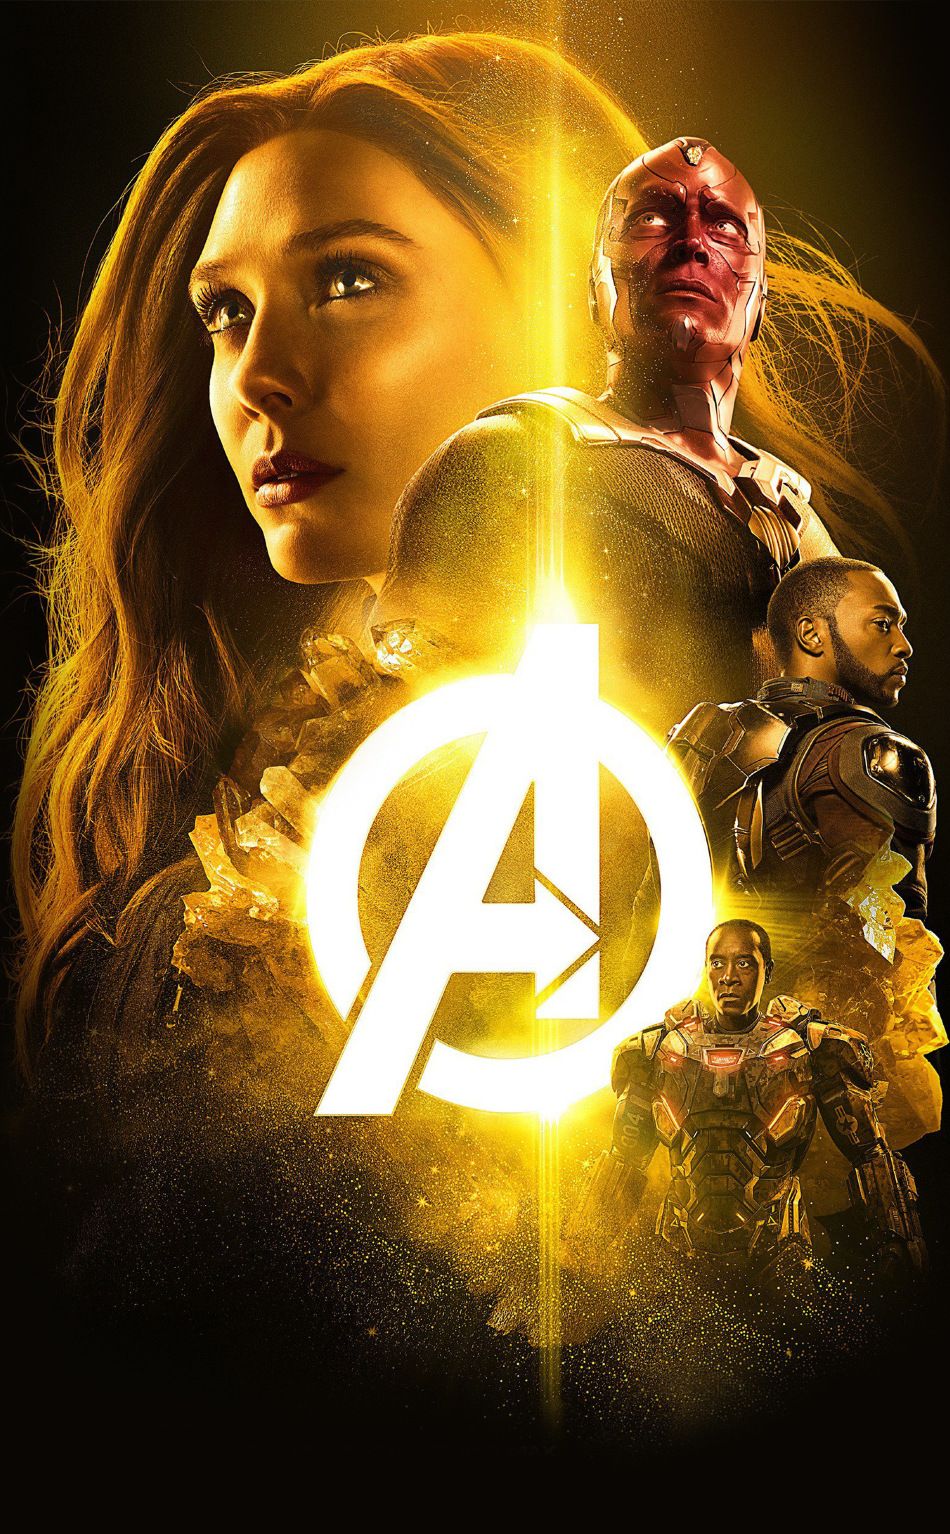 Avengers infinity war 2018 the mind stone poster hd 4k - Avengers infinity war wallpaper iphone ...